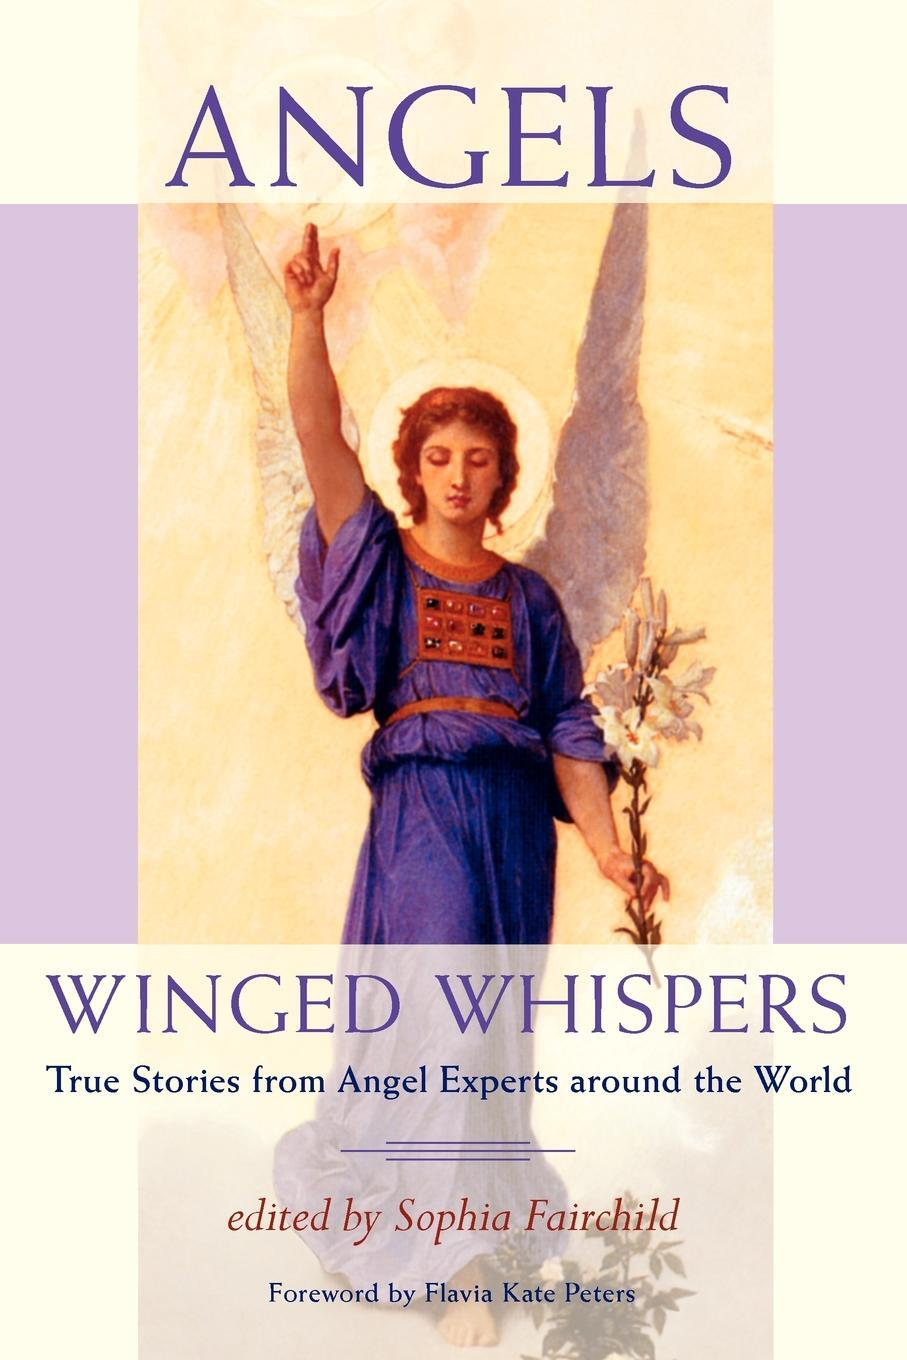 Angels. Winged Whispers - True Stories from Angel Experts around the World